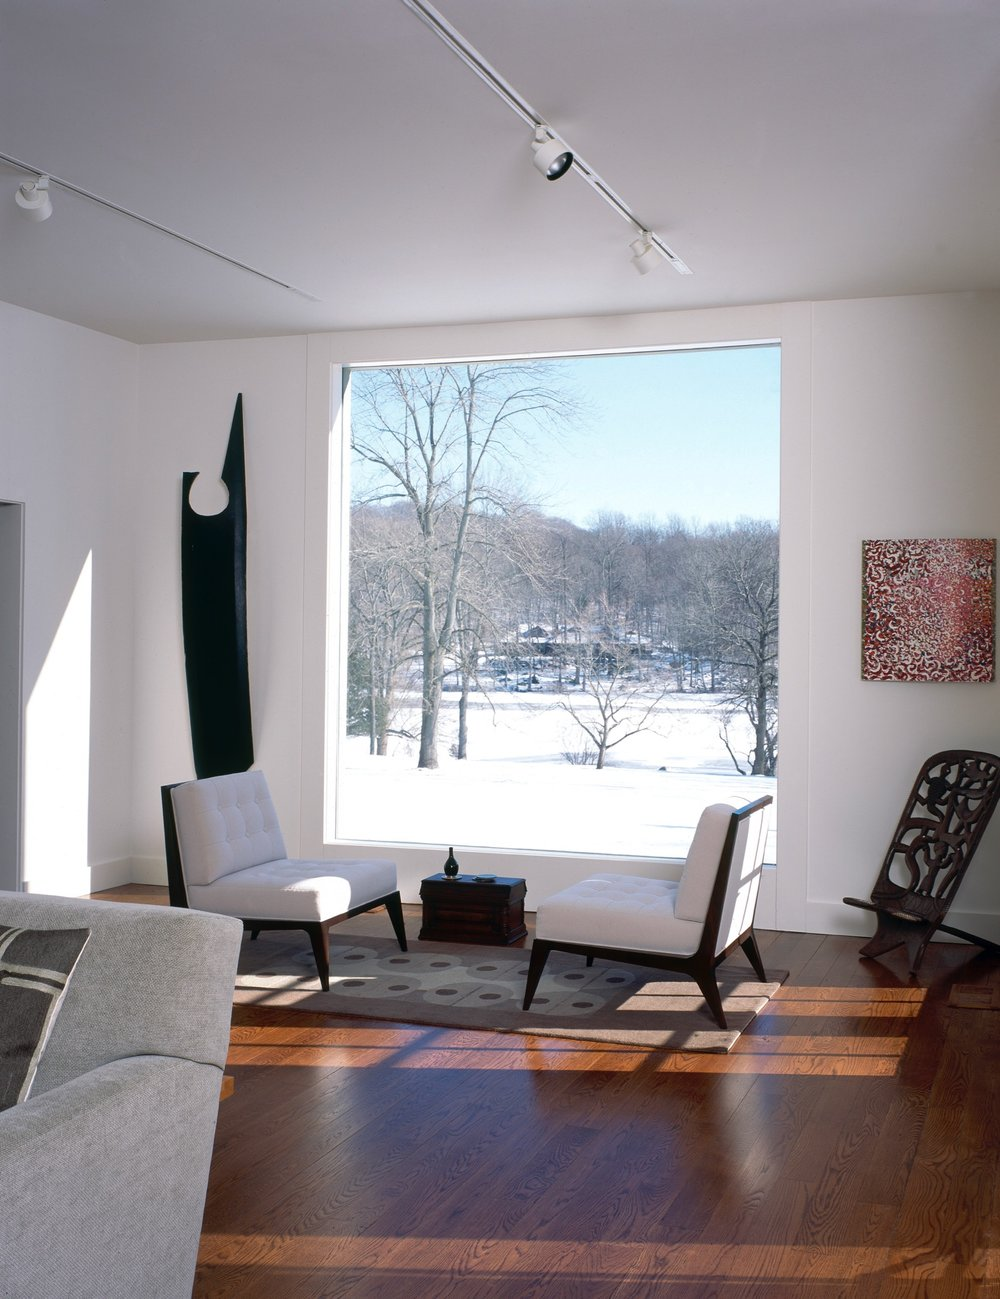 Modern room with white walls in winter